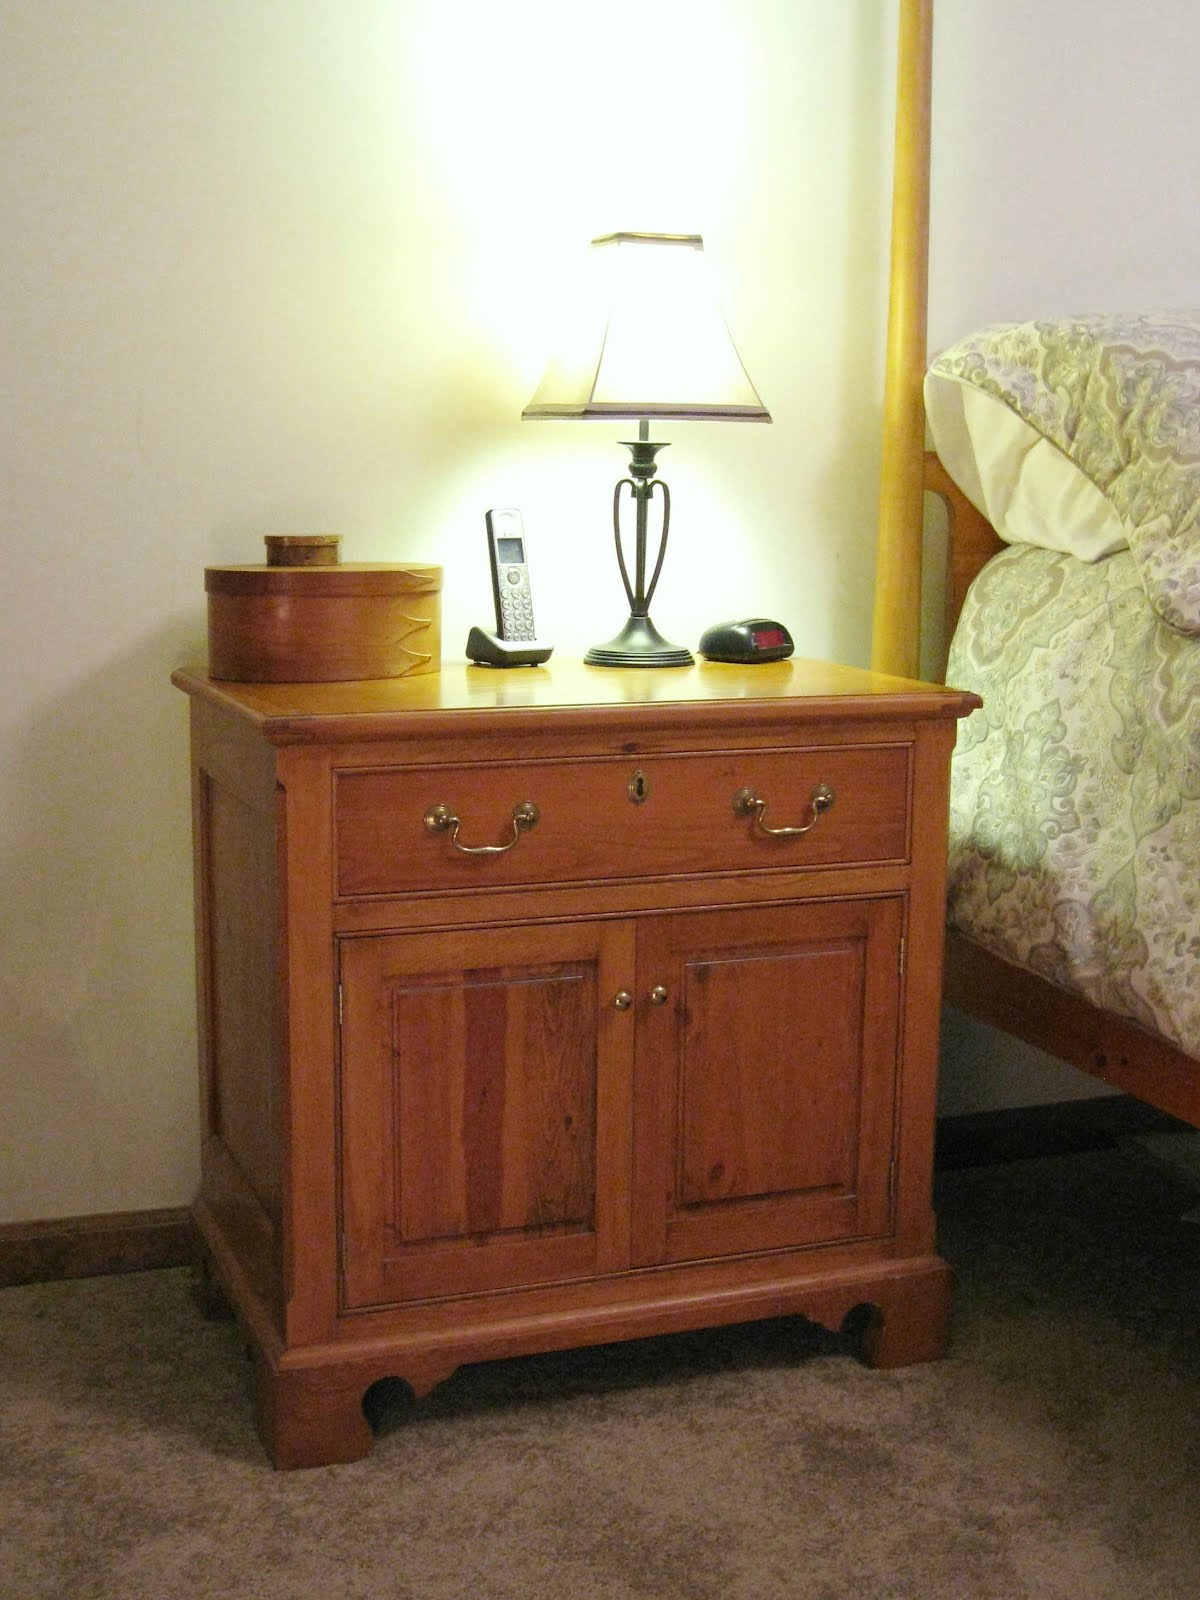 PDF DIY Free Woodworking Plans Bedroom Furniture Download Sandbox Plans Diy